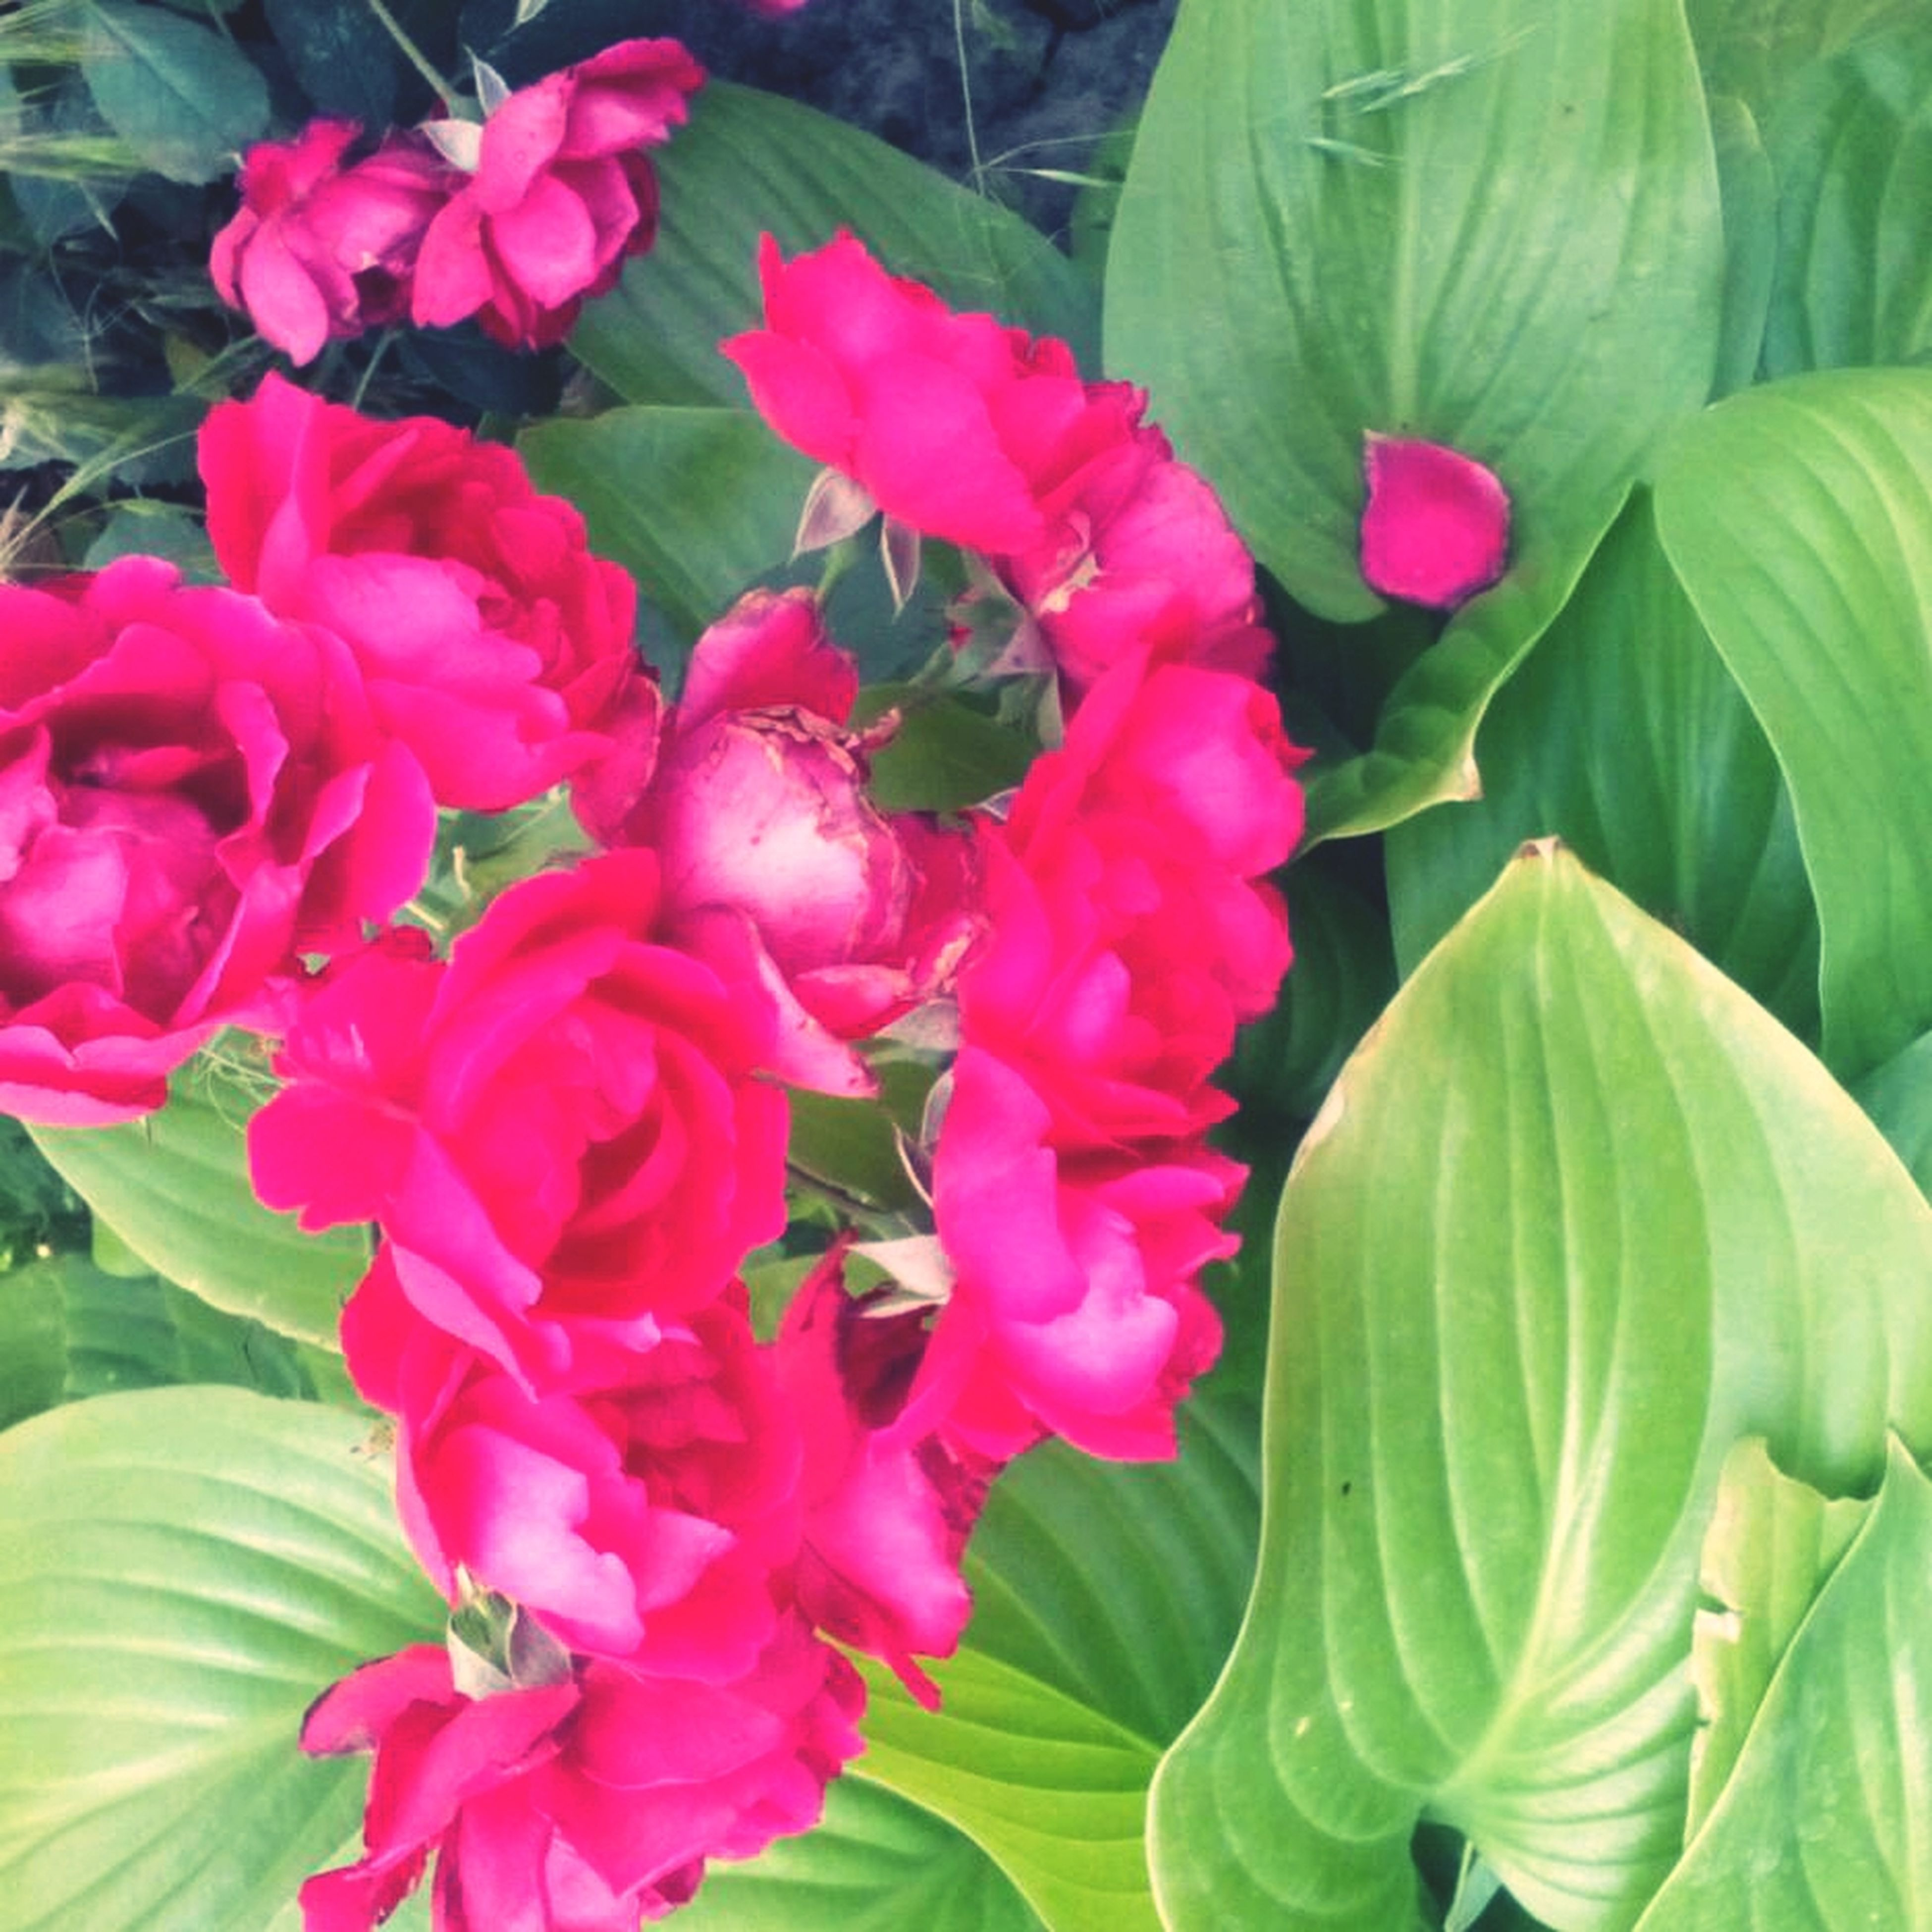 flower, freshness, growth, fragility, petal, leaf, beauty in nature, pink color, flower head, plant, nature, blooming, green color, close-up, in bloom, park - man made space, blossom, outdoors, pink, day